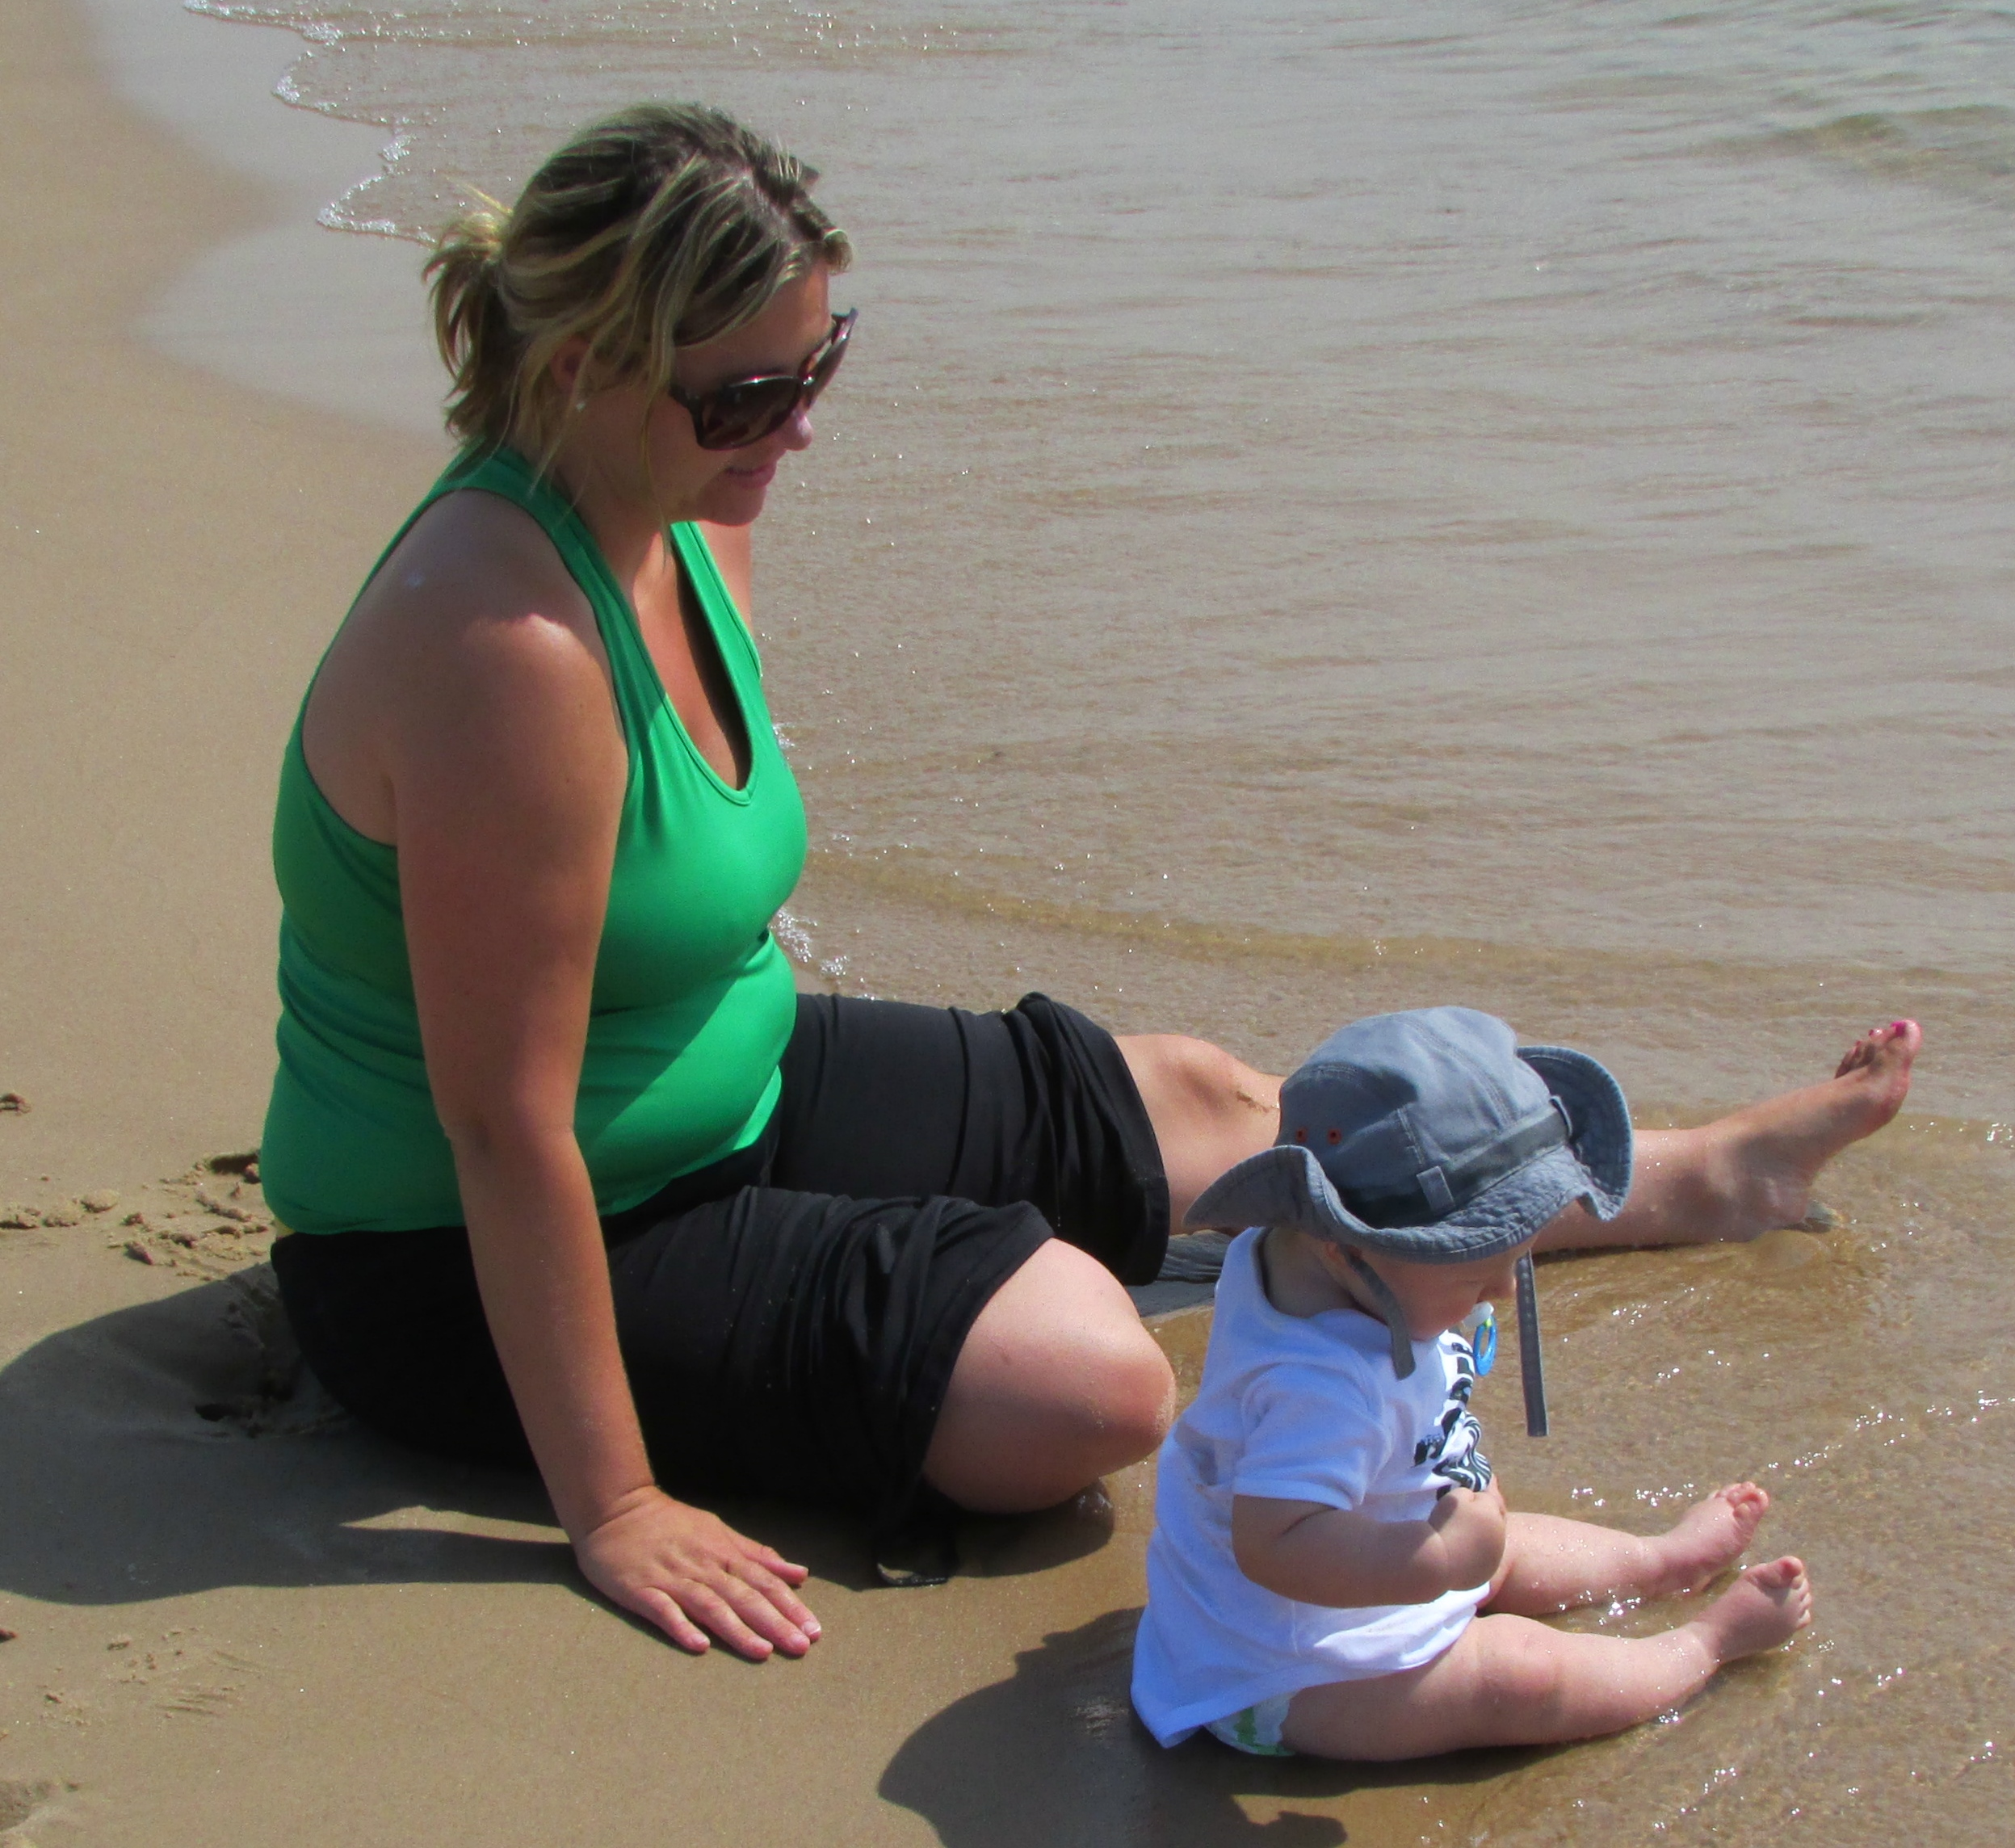 May 2013 Beach Vacation with baby #3 - 196 lbs and holding